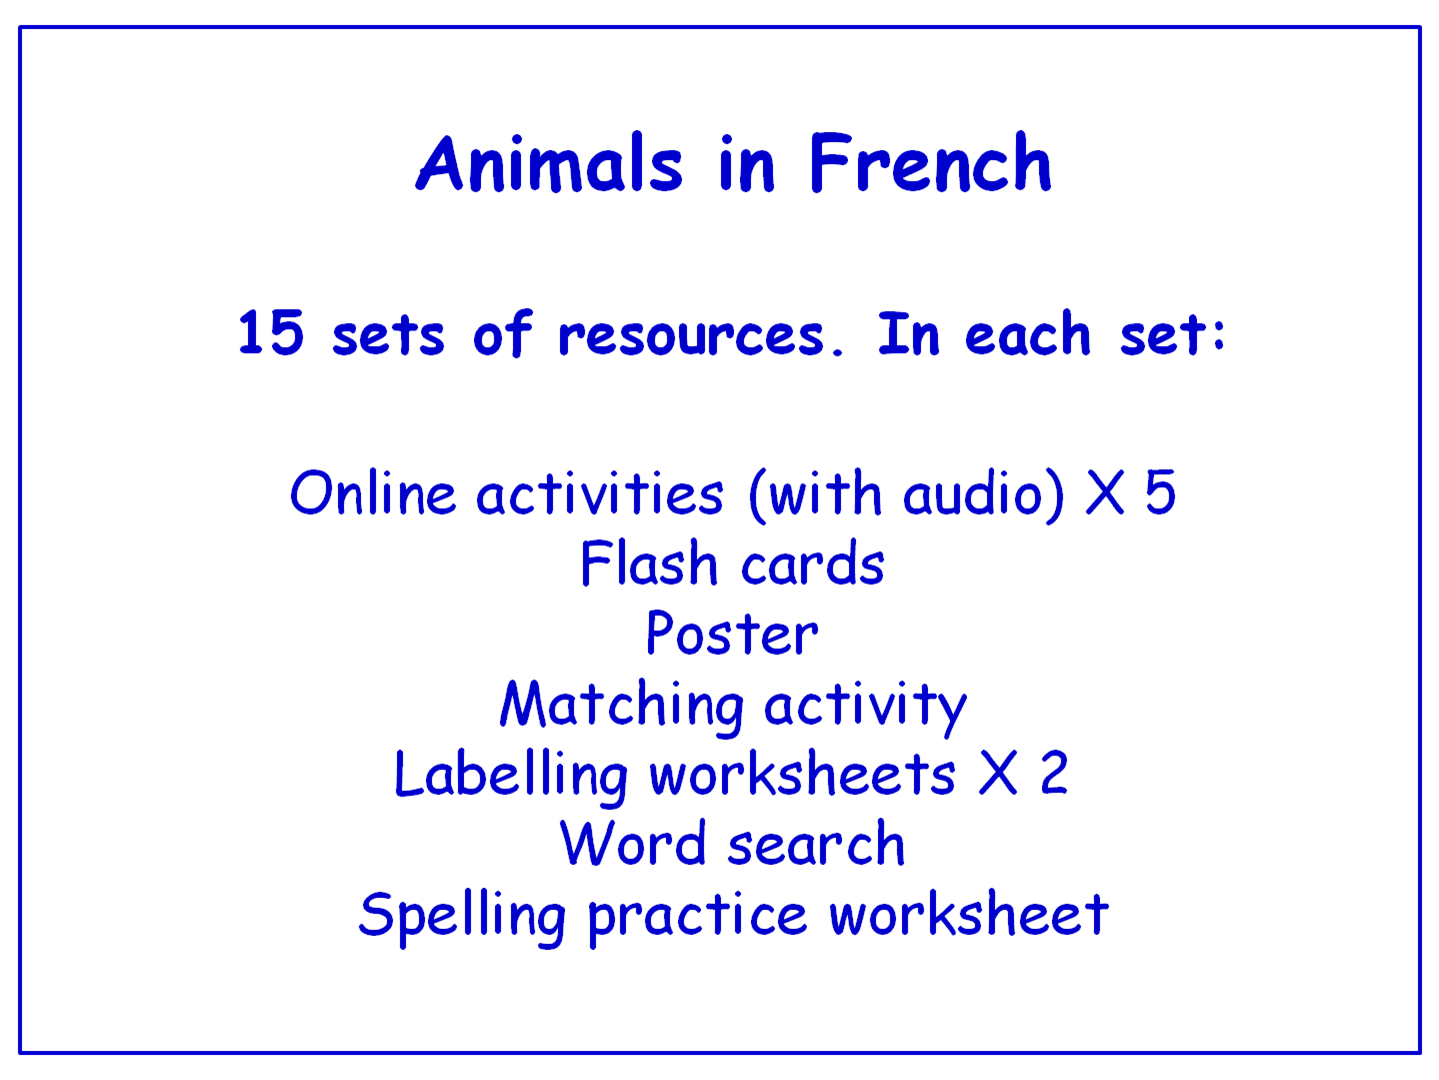 Animals in French  Worksheets, Games, Activities and Flash Cards (with audio)